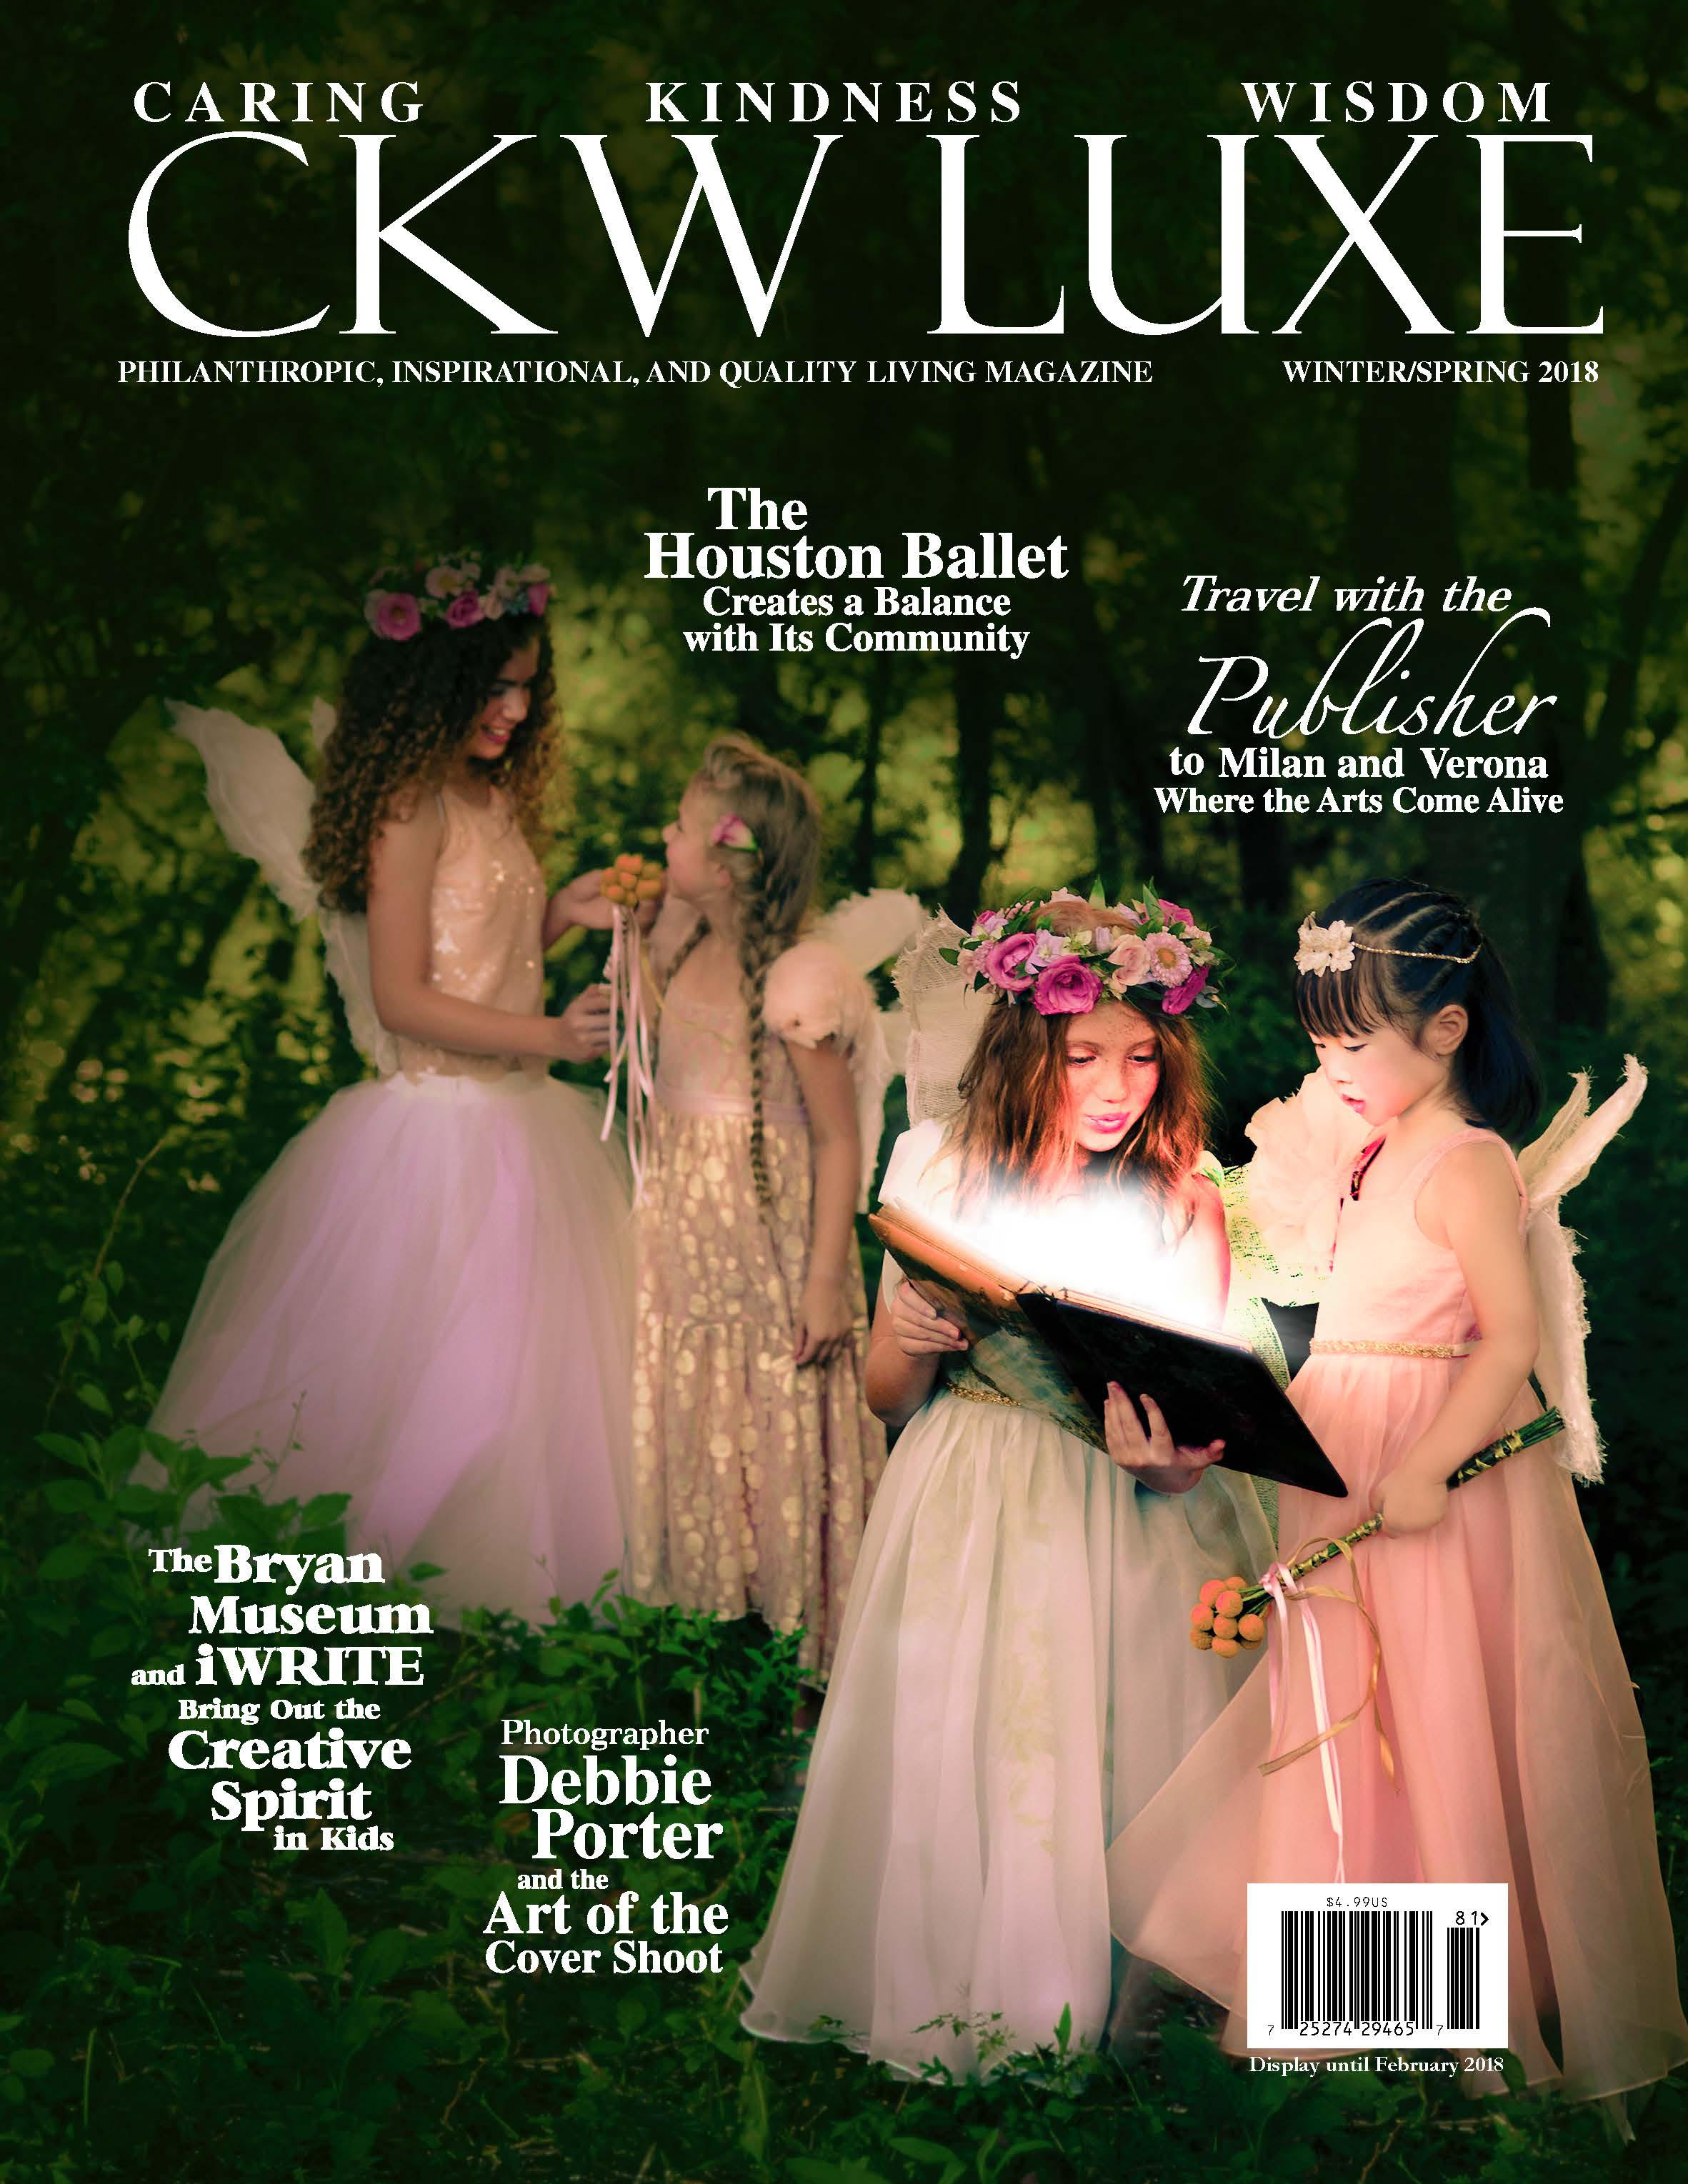 CKW LUXE MAGAZINE - 2018 Winter/Spring Edition